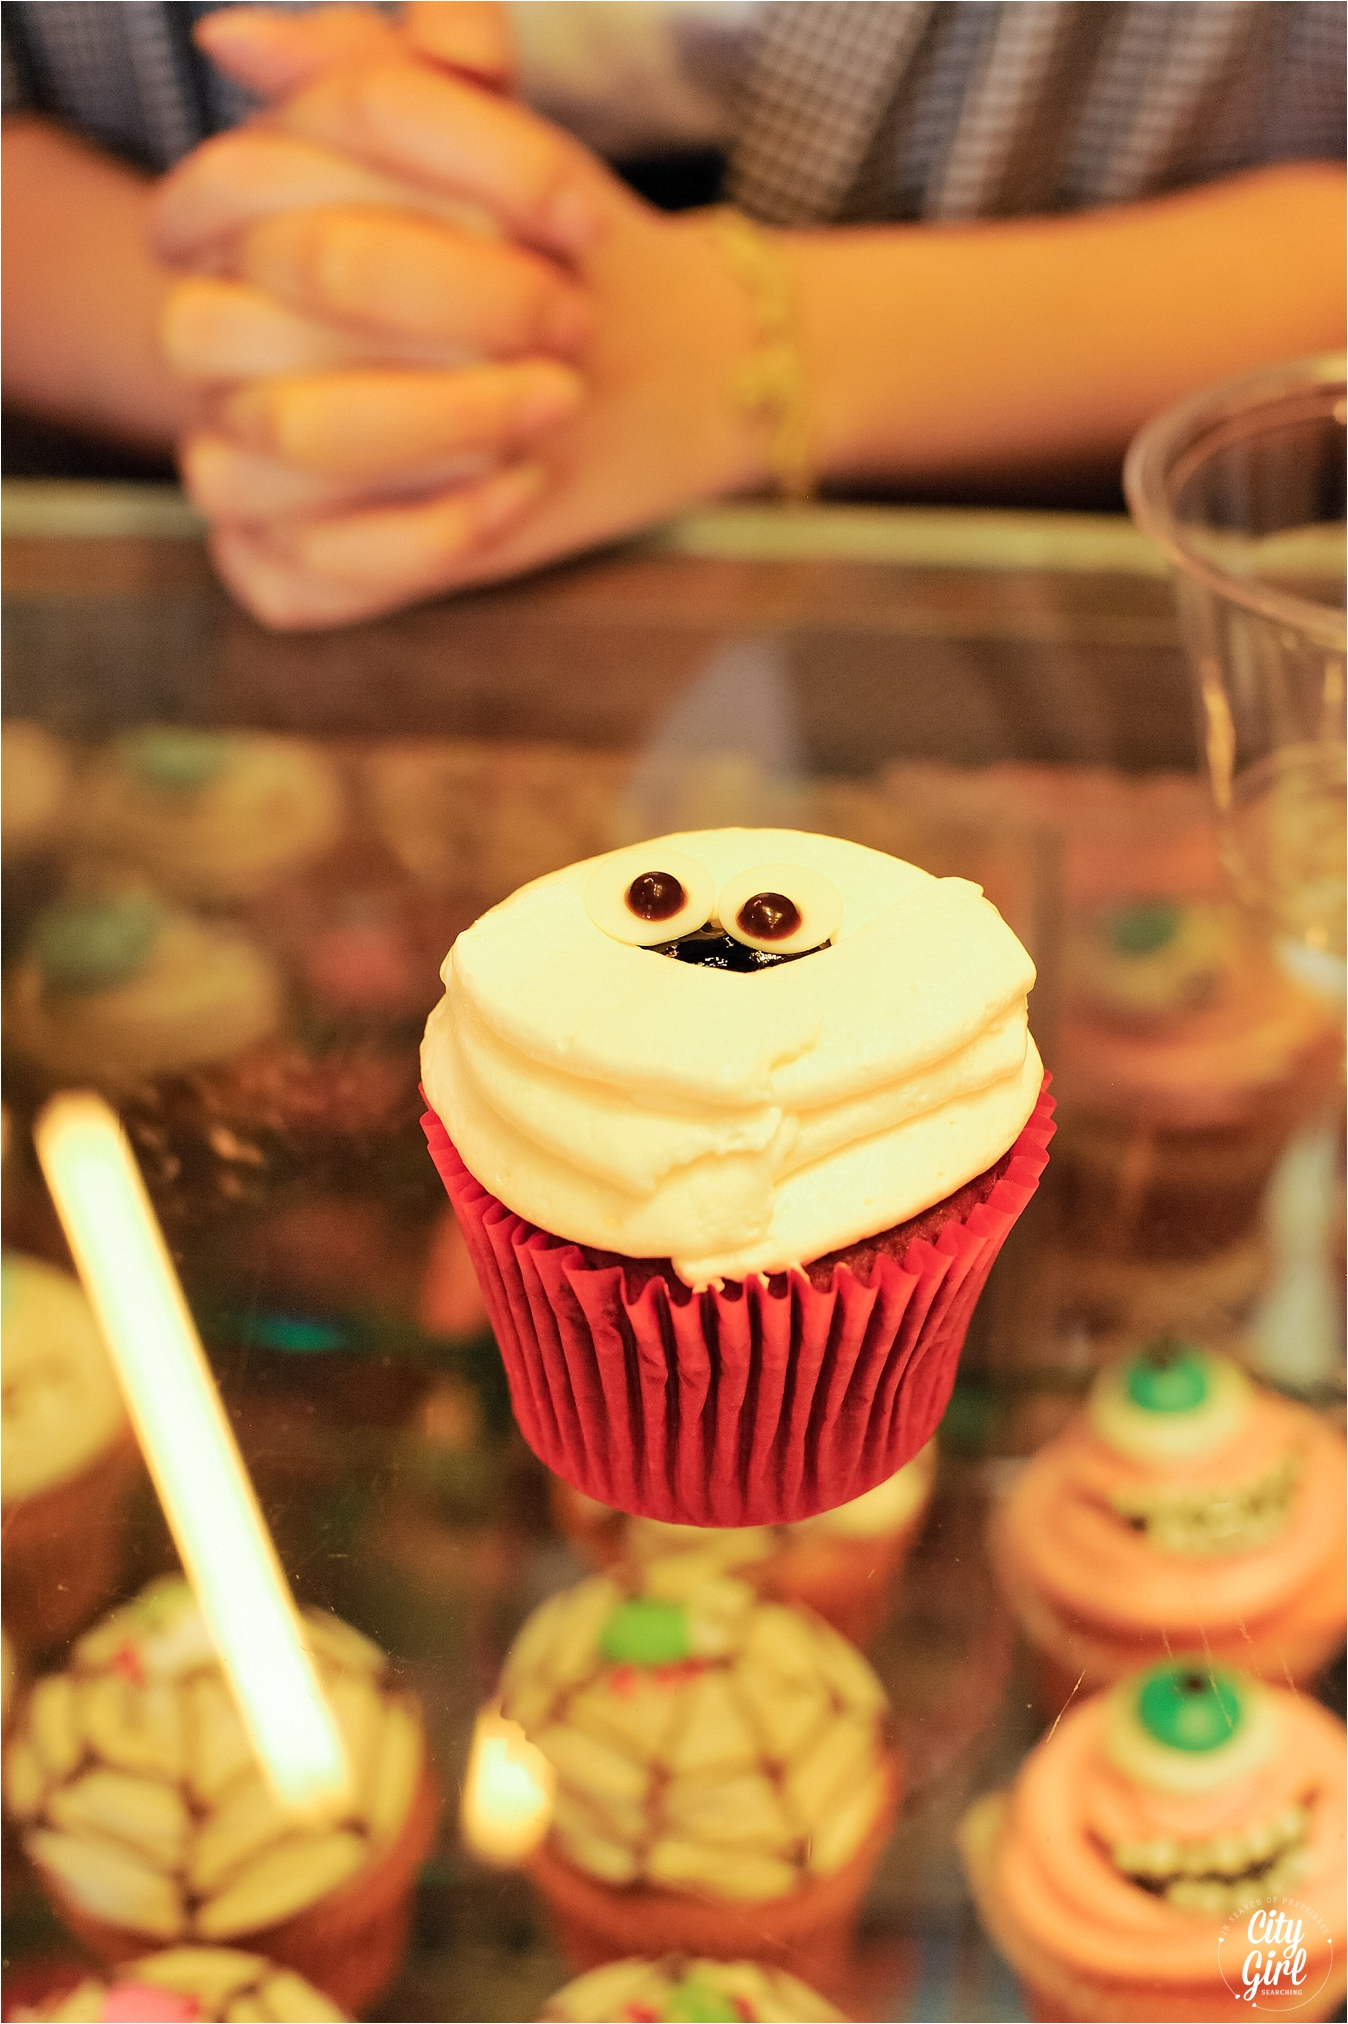 MonsterCupcakeSeoul_0011.jpg